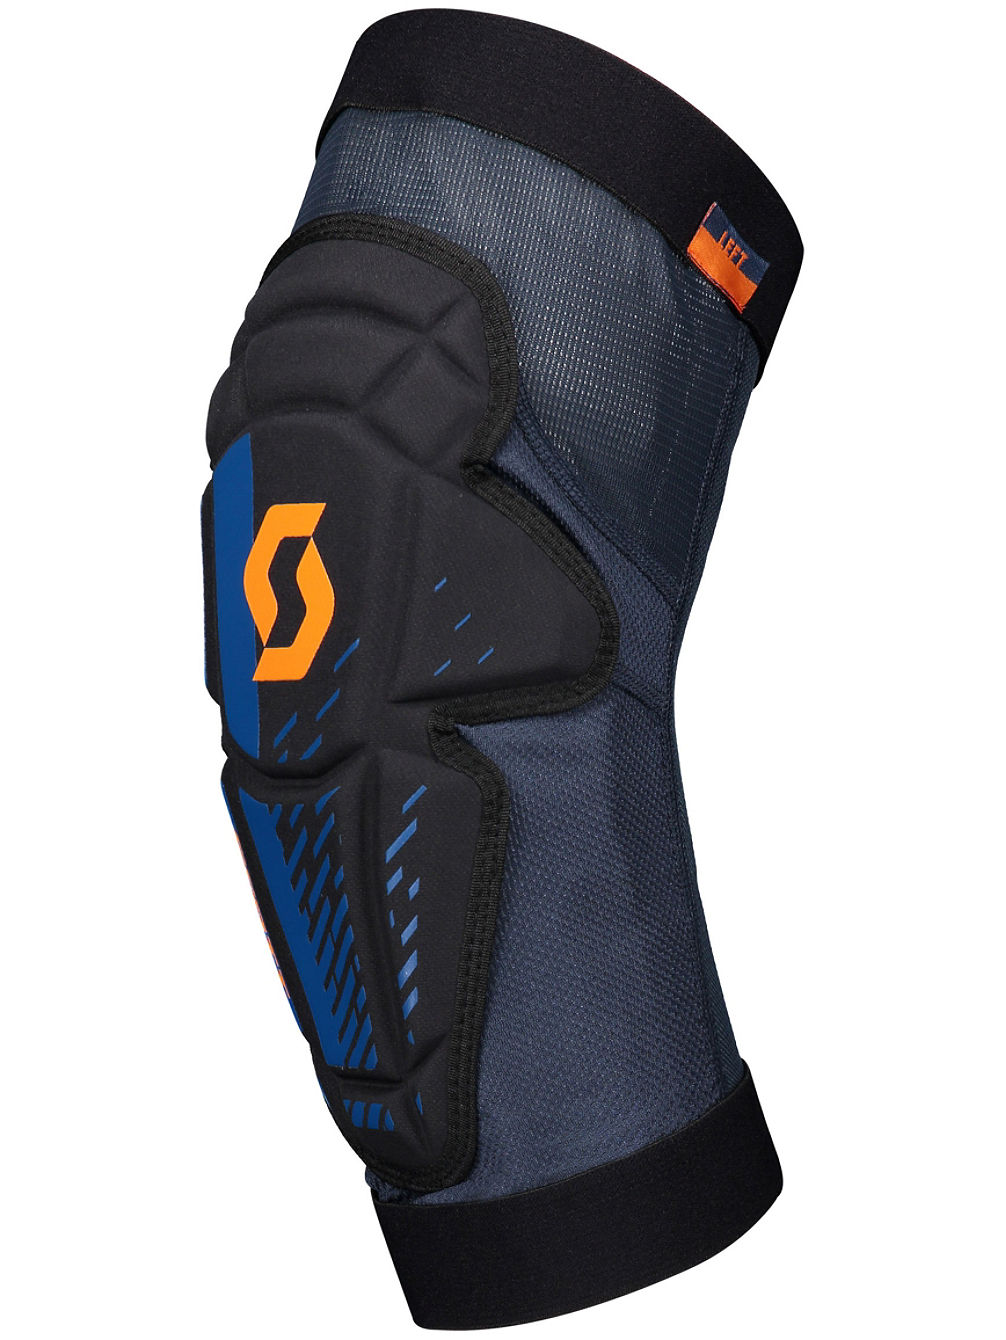 Mission Knee Pads Youth